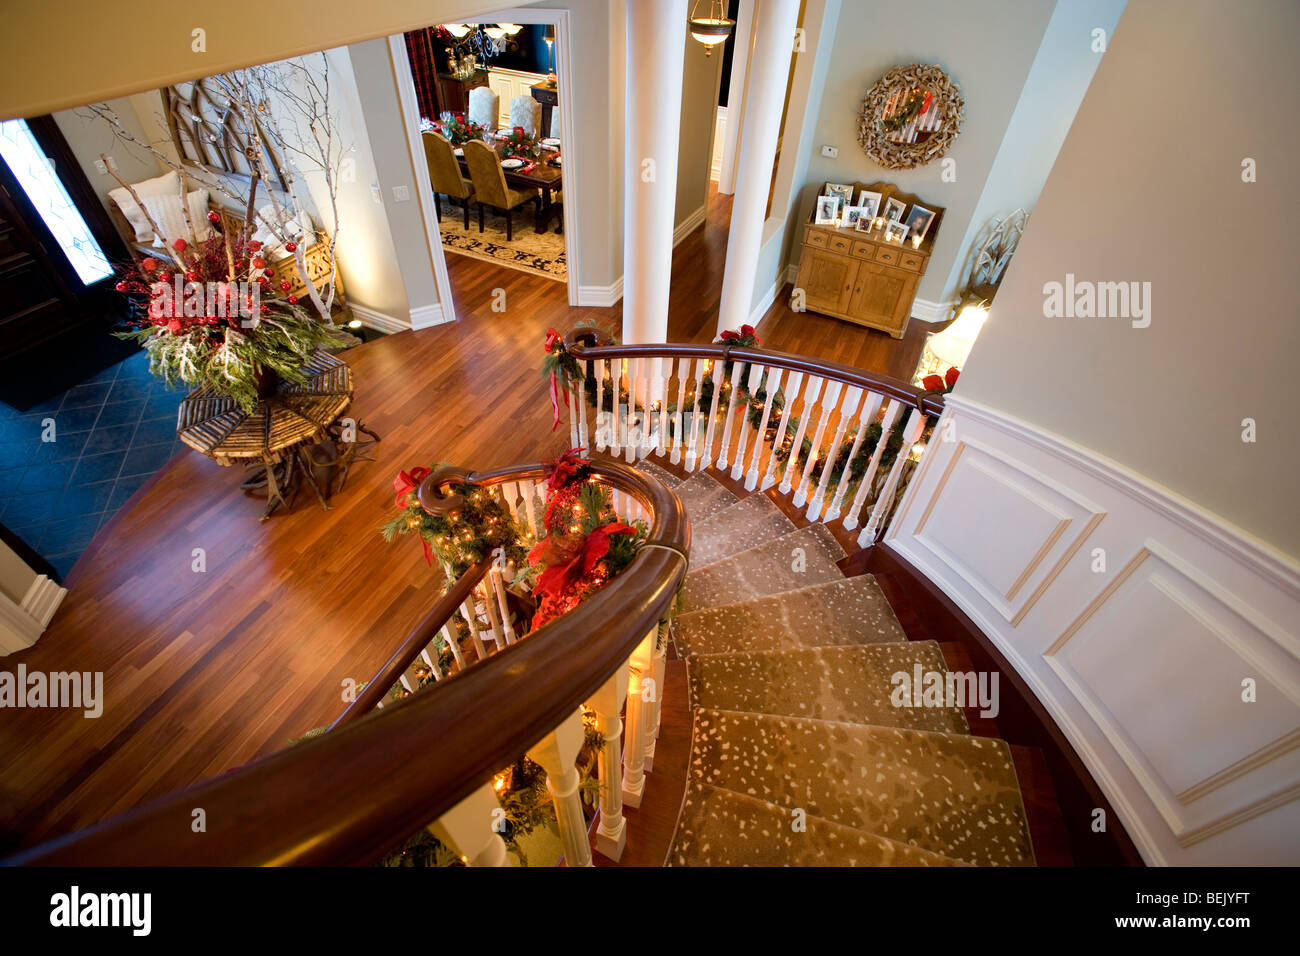 Elegant Curved Staircase With Christmas Decorations Stock Photo Alamy